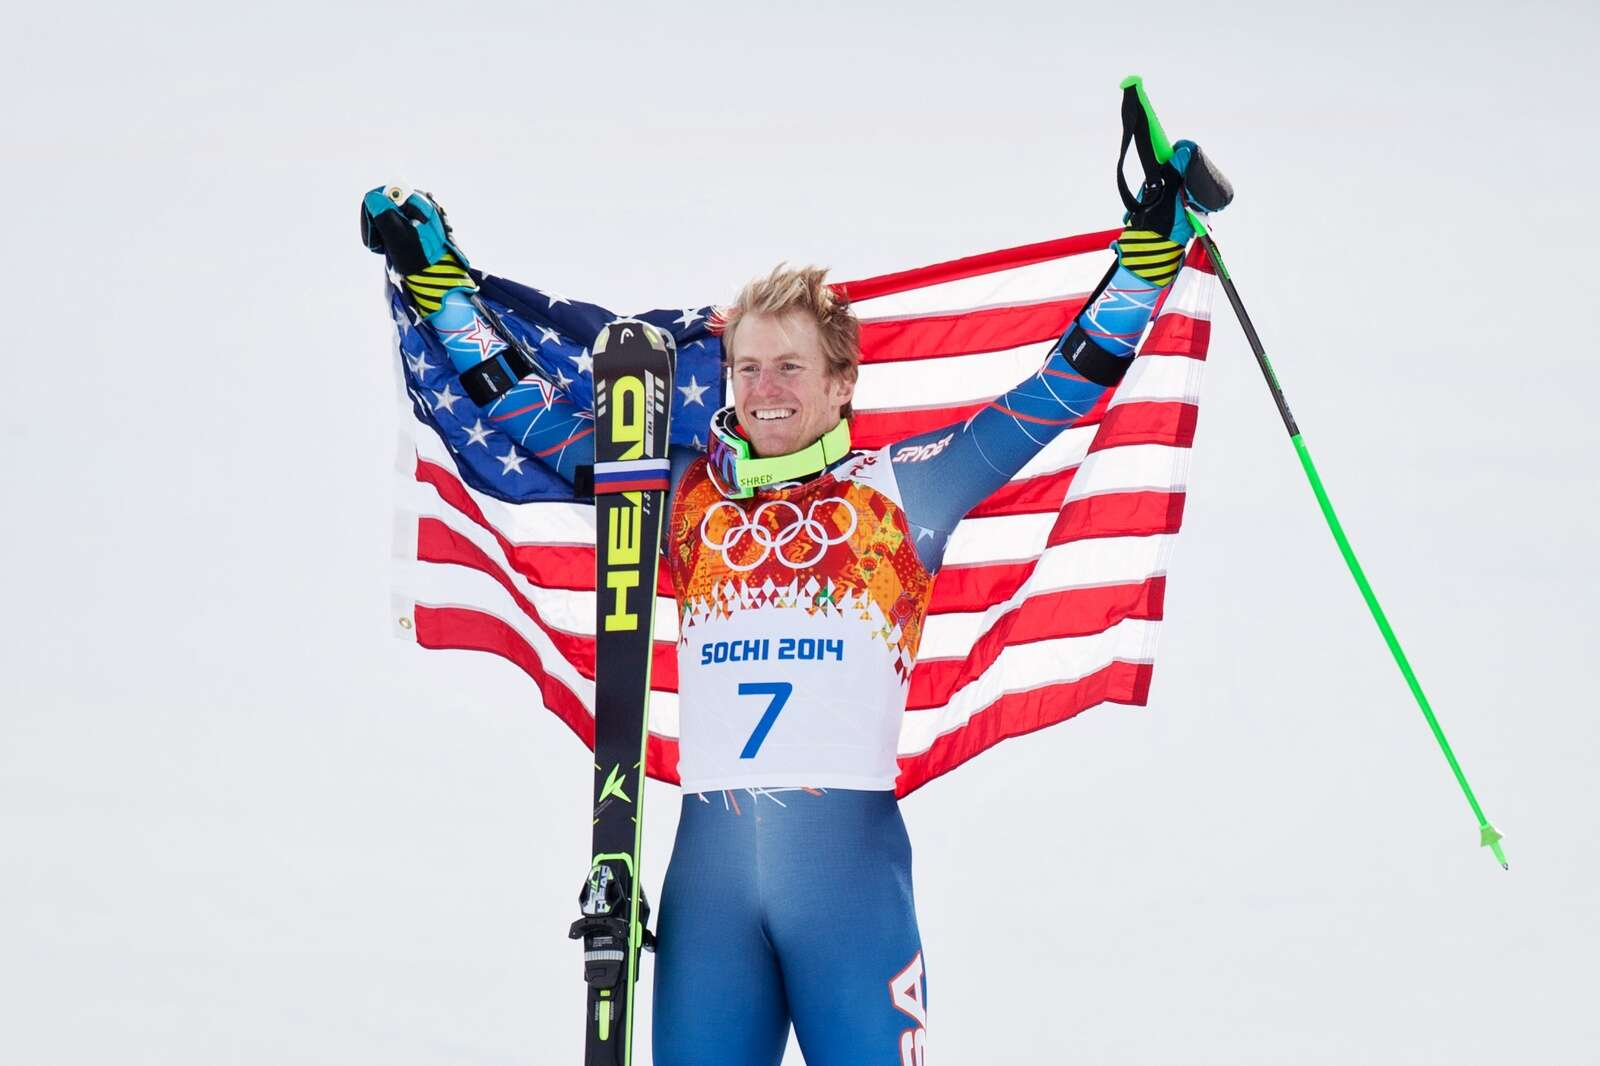 Ted Ligety, Parkite who climbed to the peak of alpine ski racing, announces end to storied career